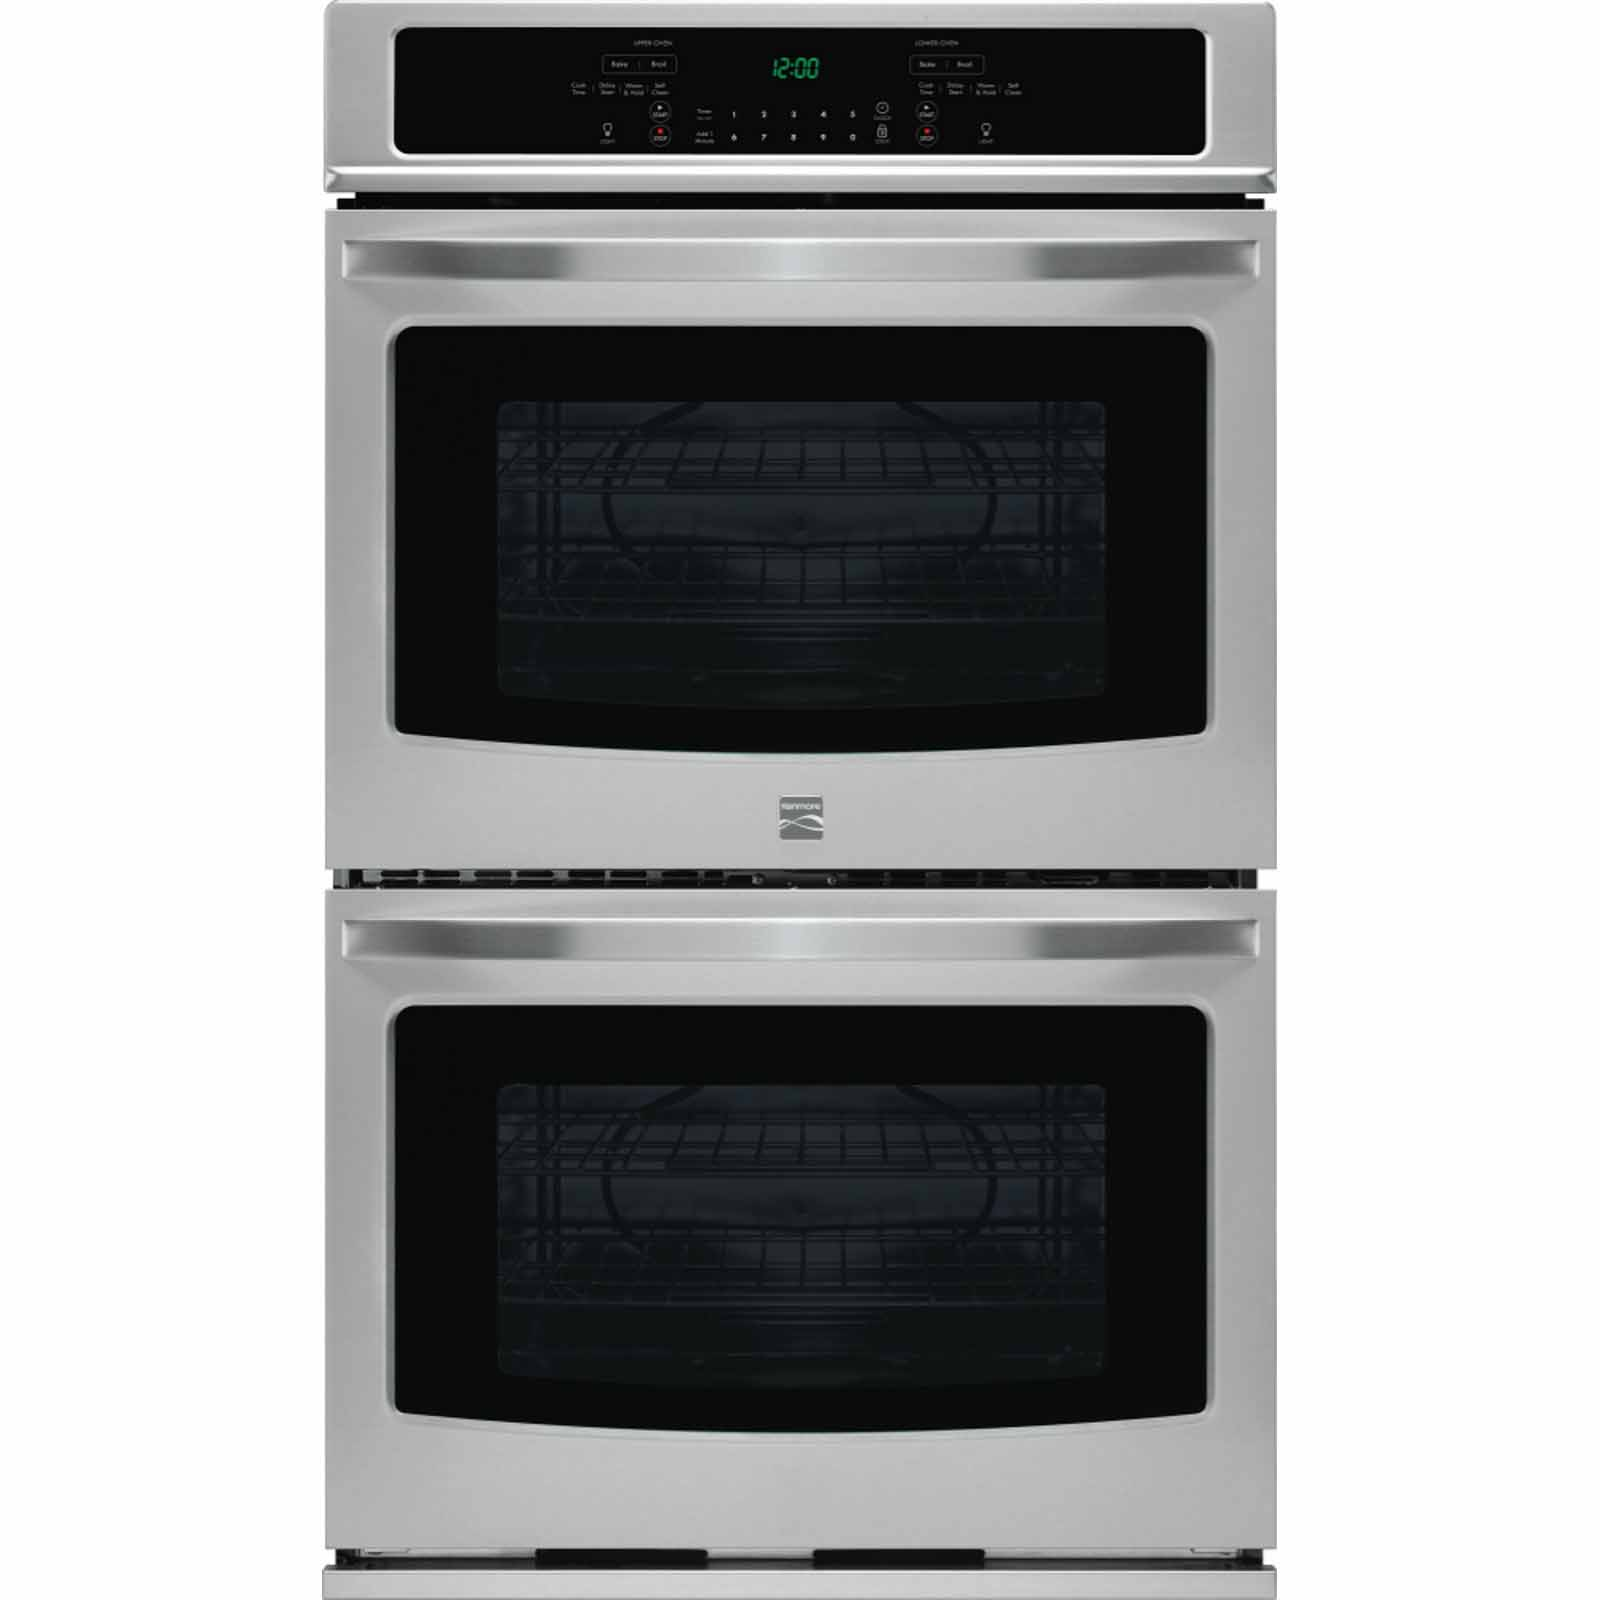 Kenmore 49443 30 Double Electric Wall Oven w/Select Clean® - Stainless Steel